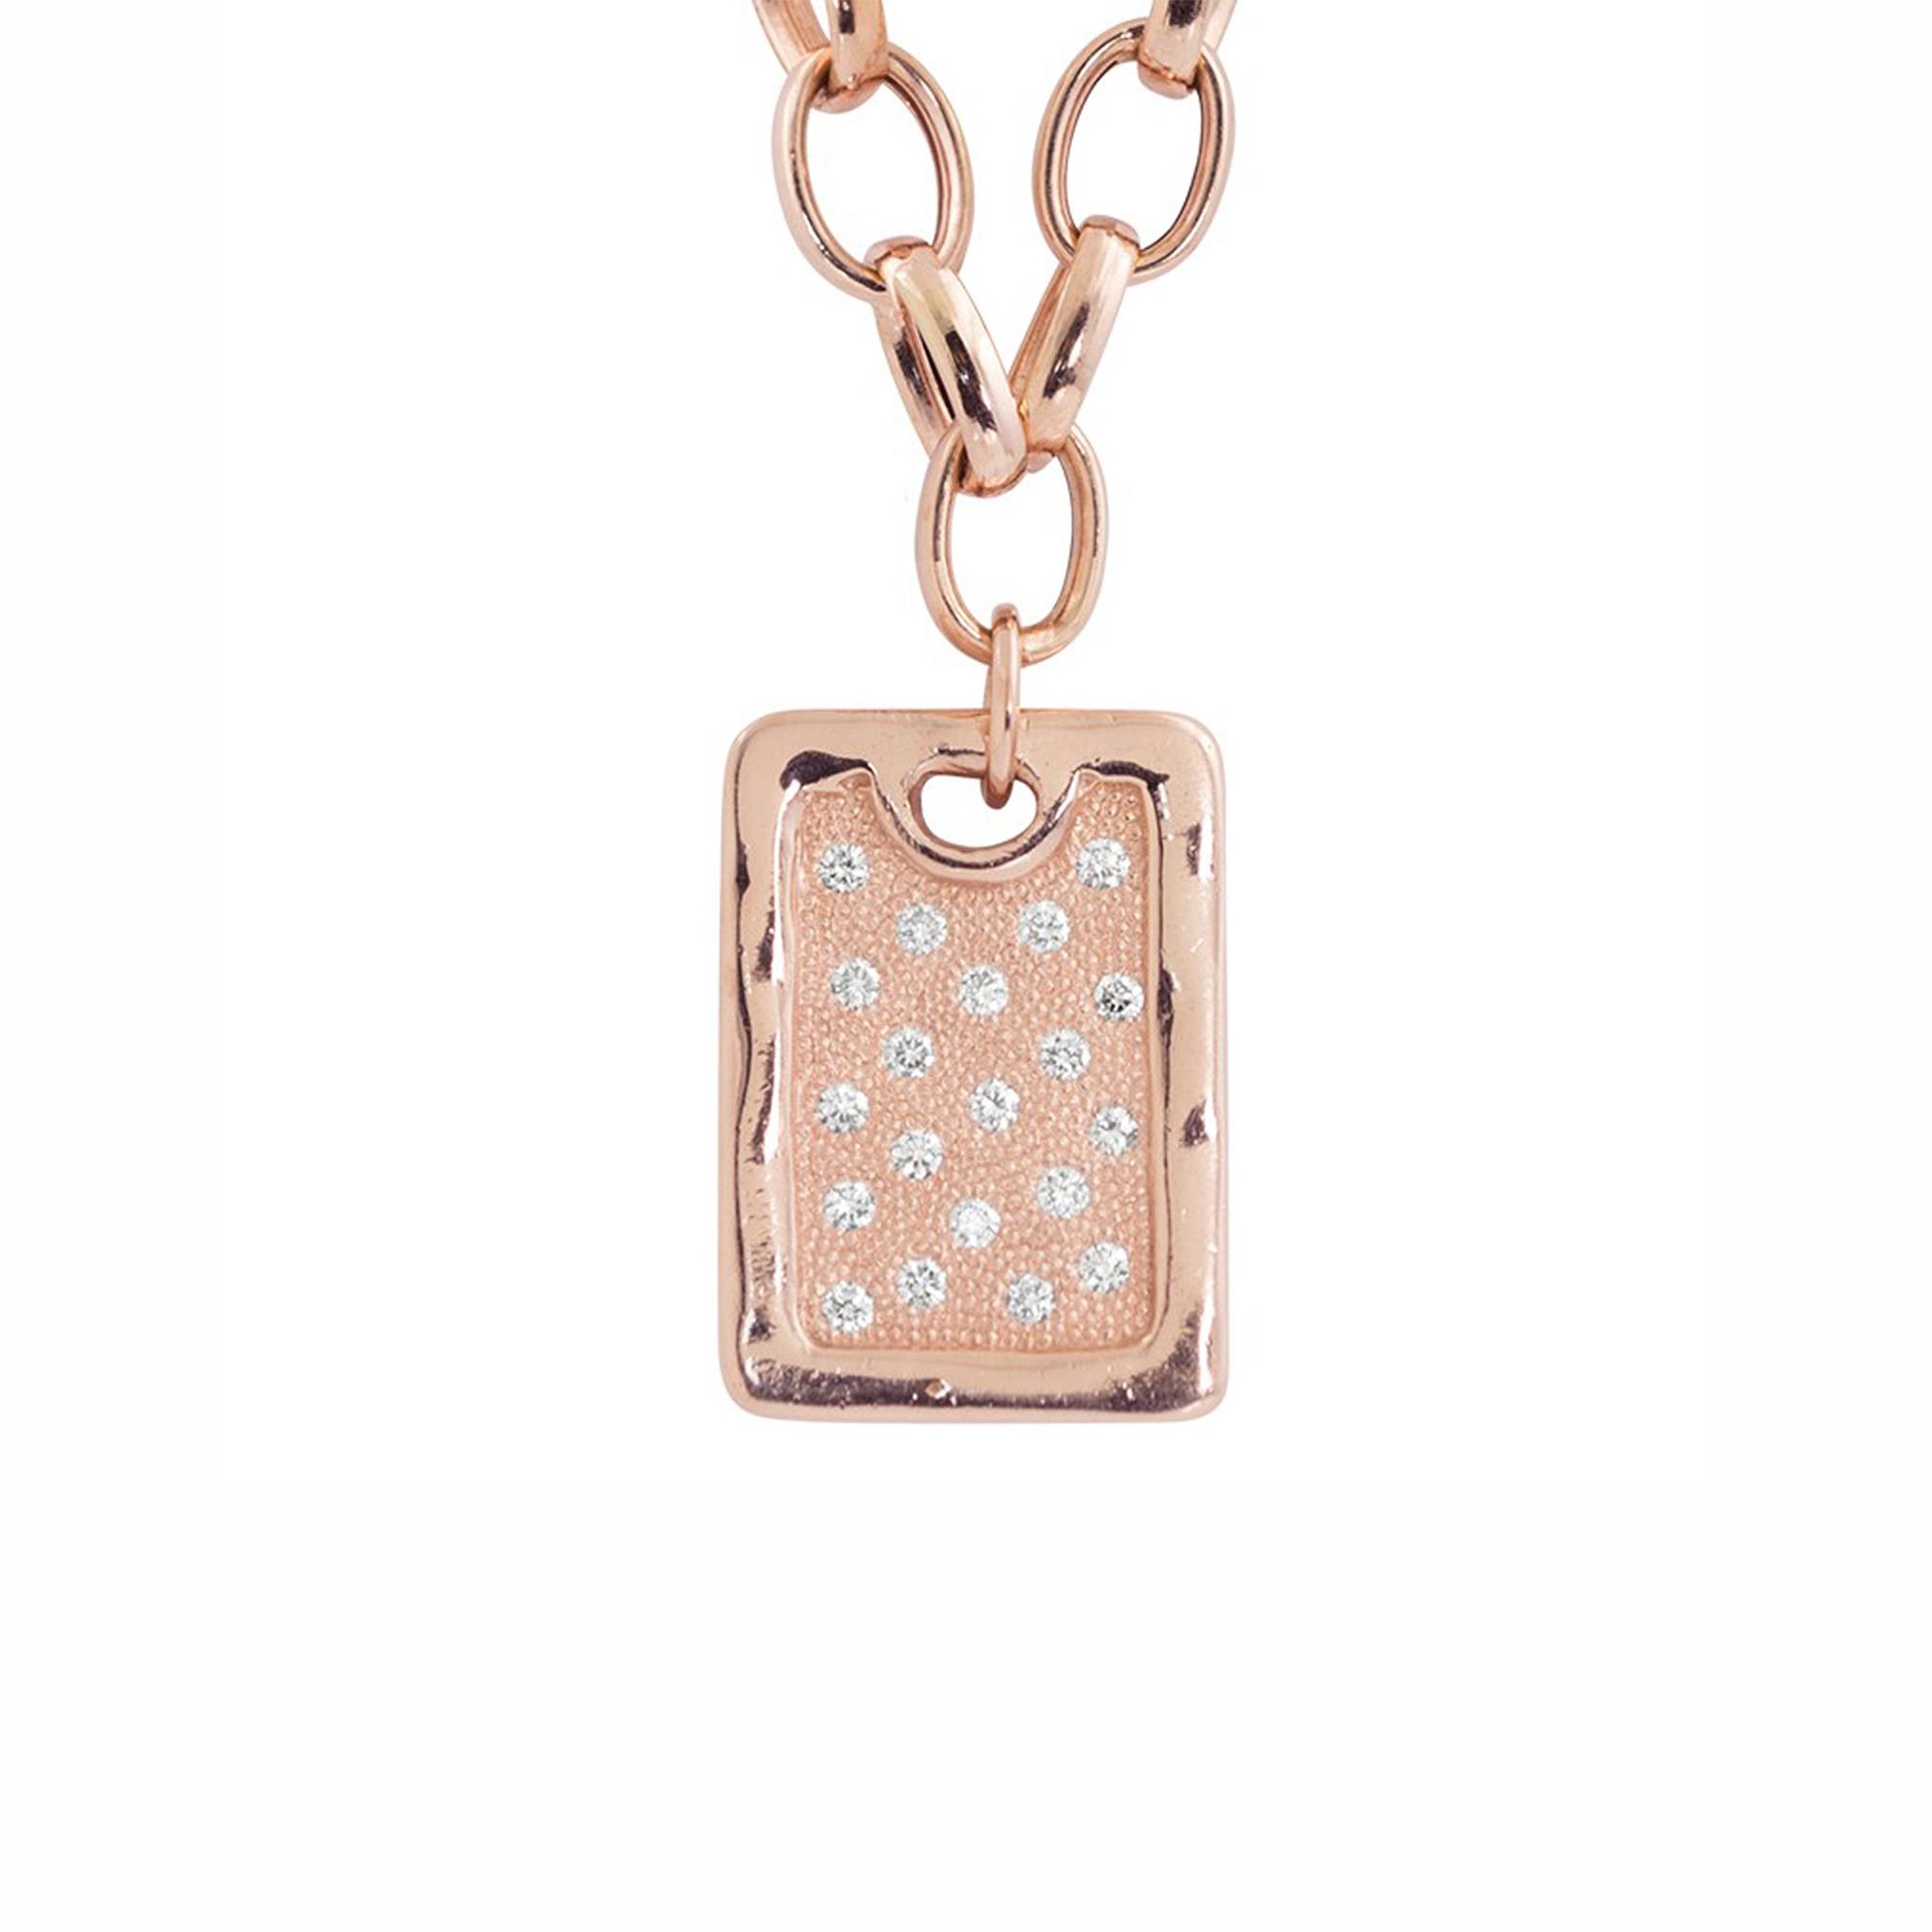 Julez Bryant 14k Large Diamond Dog Tag Pendant Necklace